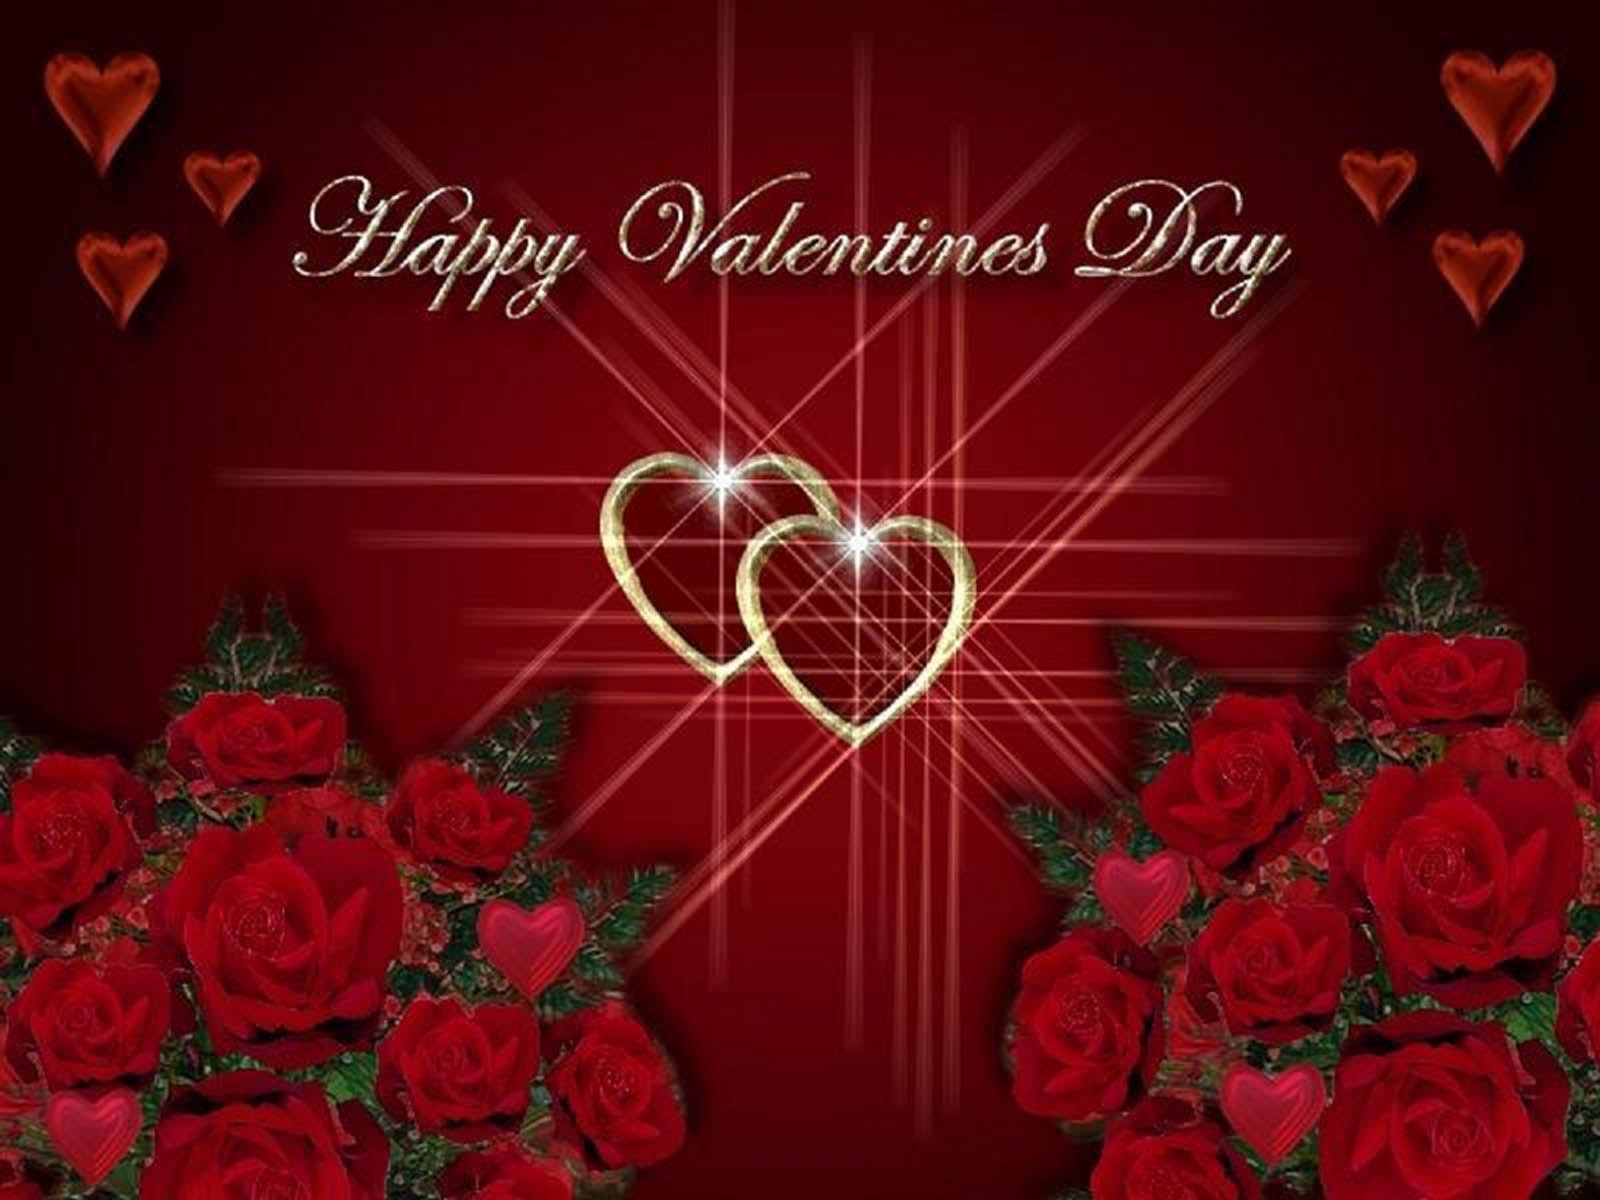 Valentines Day Wallpapers For Desktop Www Picsbud Com